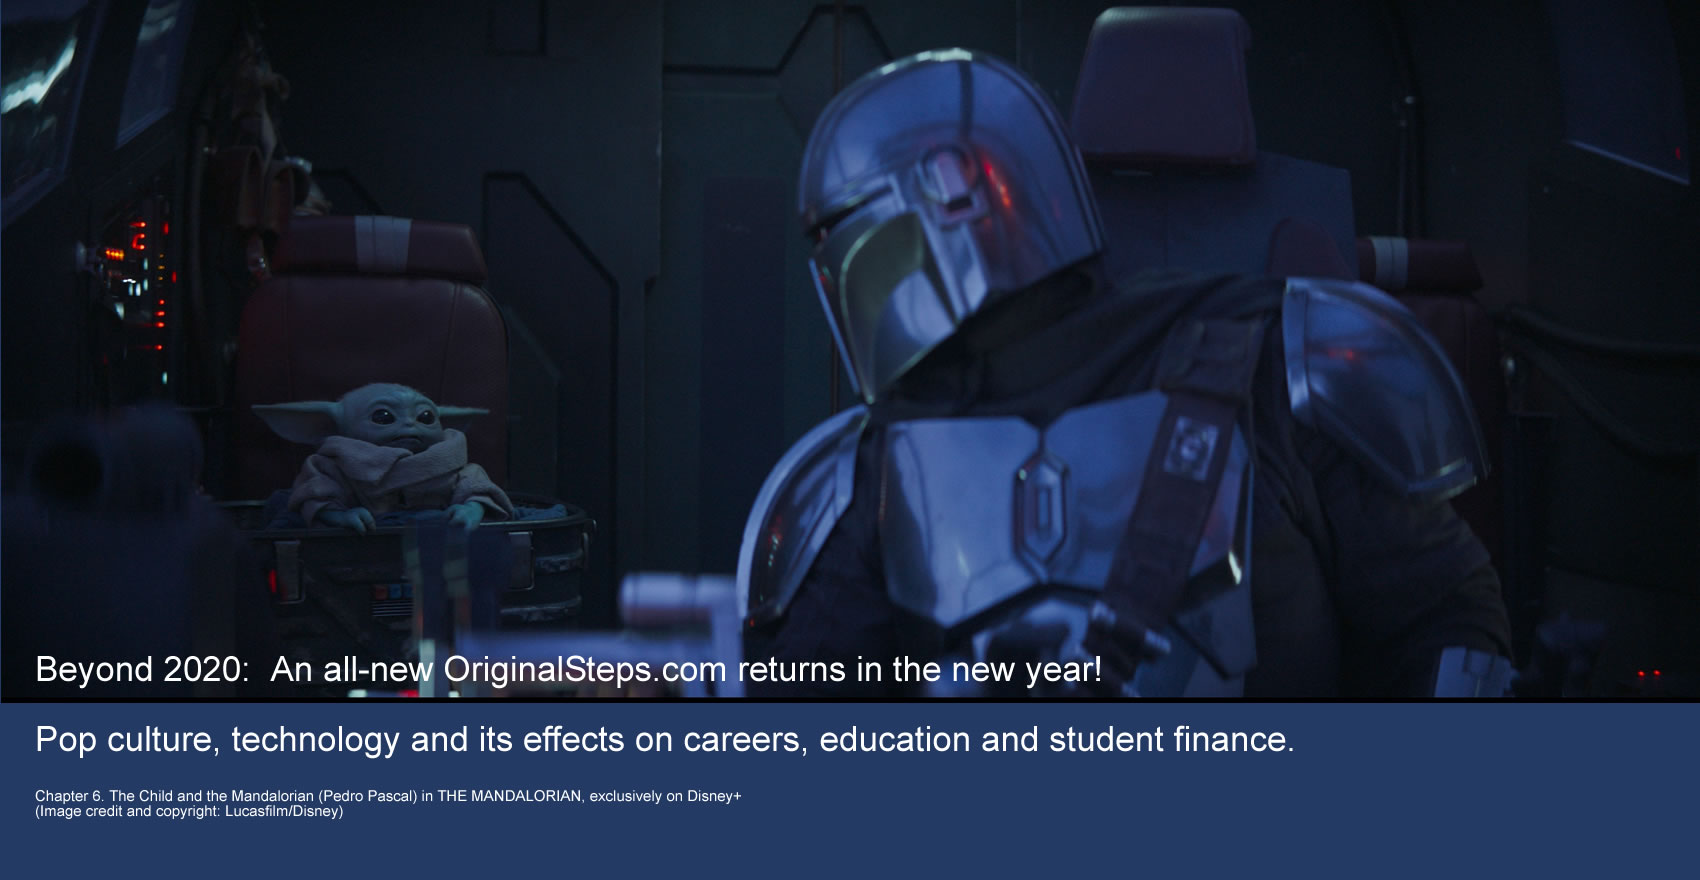 Beyond 2020:  An all-new OriginalSteps.com returns in the new year! Pop culture, technology and its effects on careers, education and student finance. Image details: Chapter 6. The Child and the Mandalorian (Pedro Pascal) in THE MANDALORIAN, exclusively on Disney+ (Image credit and copyright: Lucasfilm/Disney)